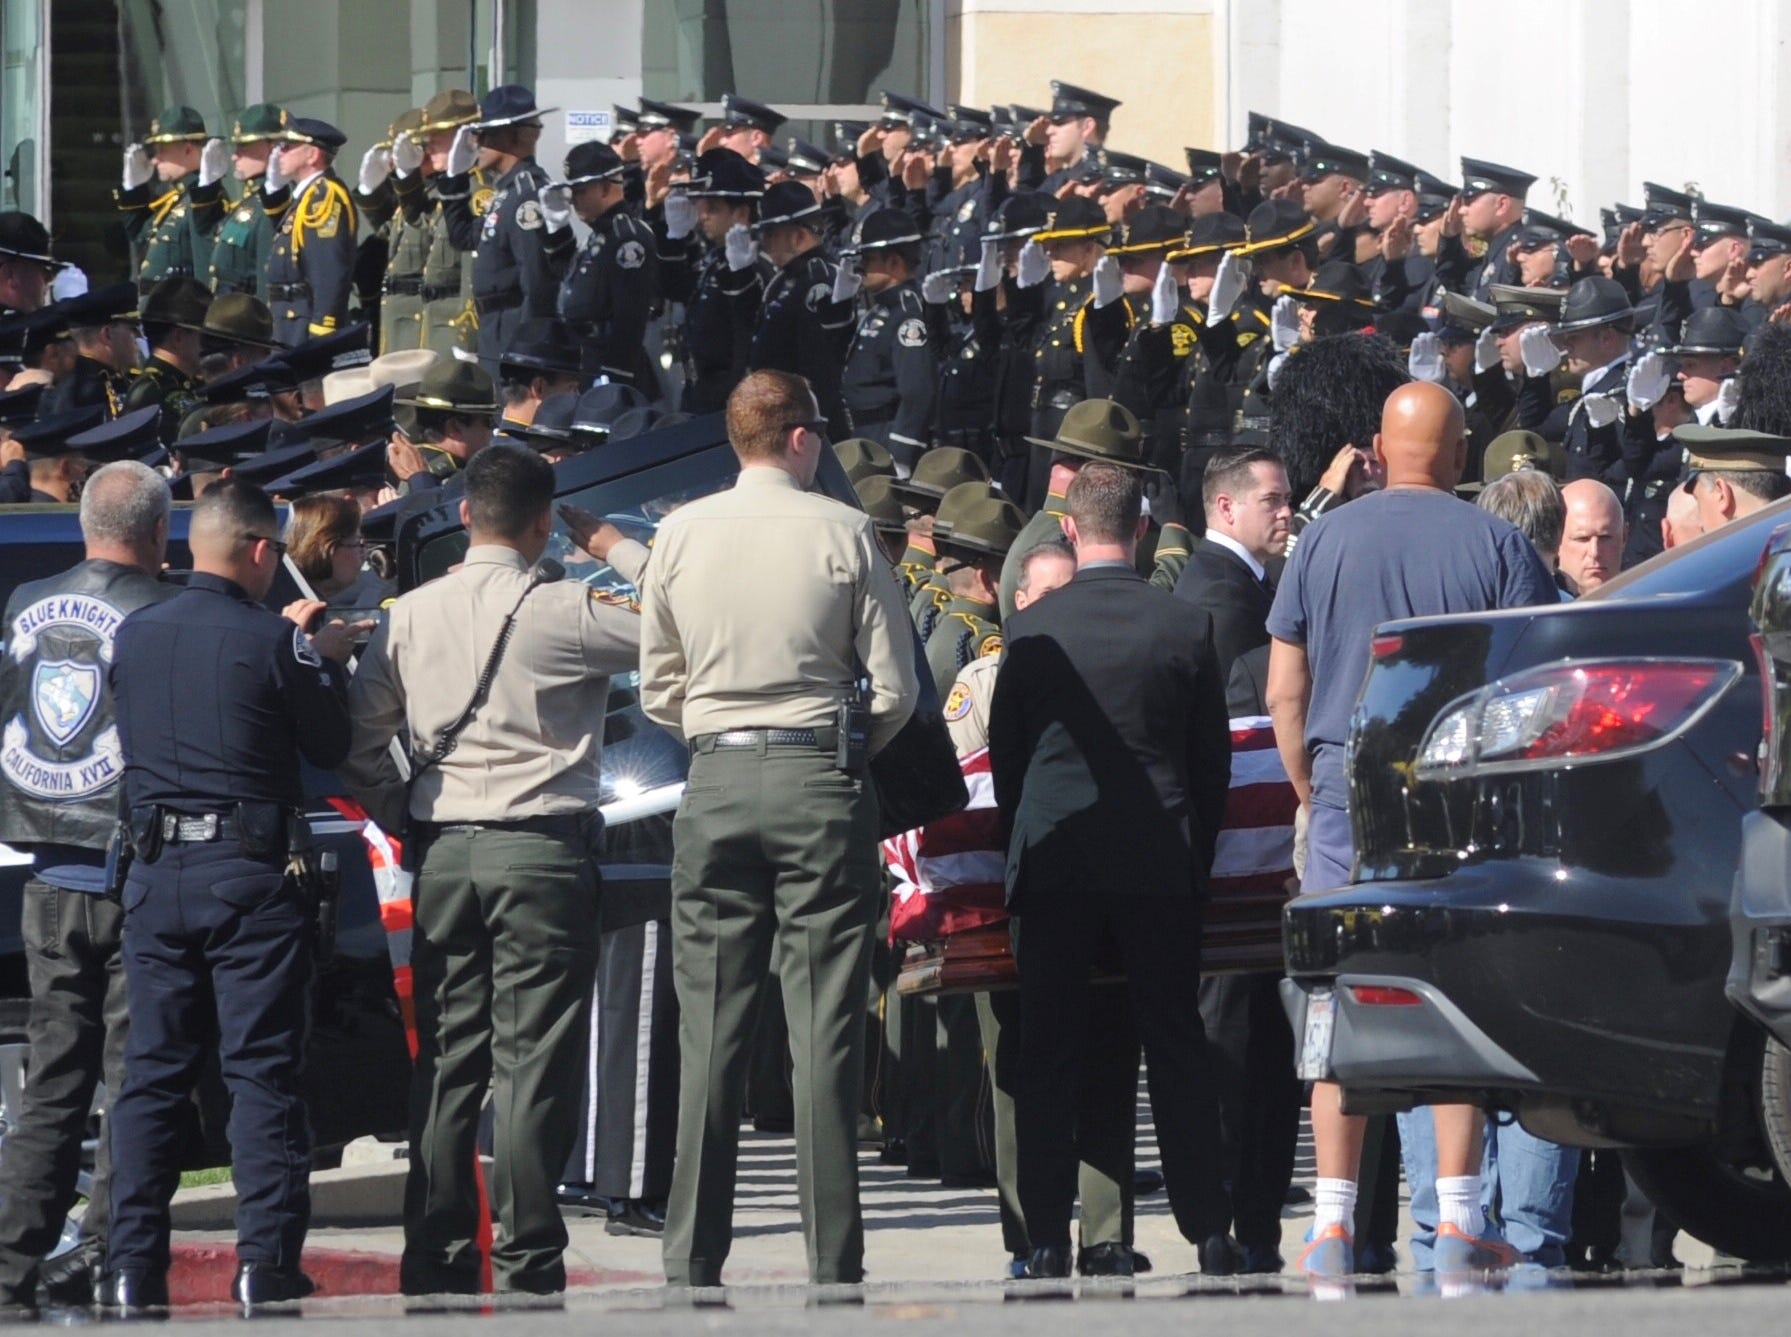 Officers stand at attention and salute as the casket carrying Ventura County Sheriff's Office Sgt. Ron Helus arrives for his memorial service at Calvary Community Church in Westlake Village on Thursday.